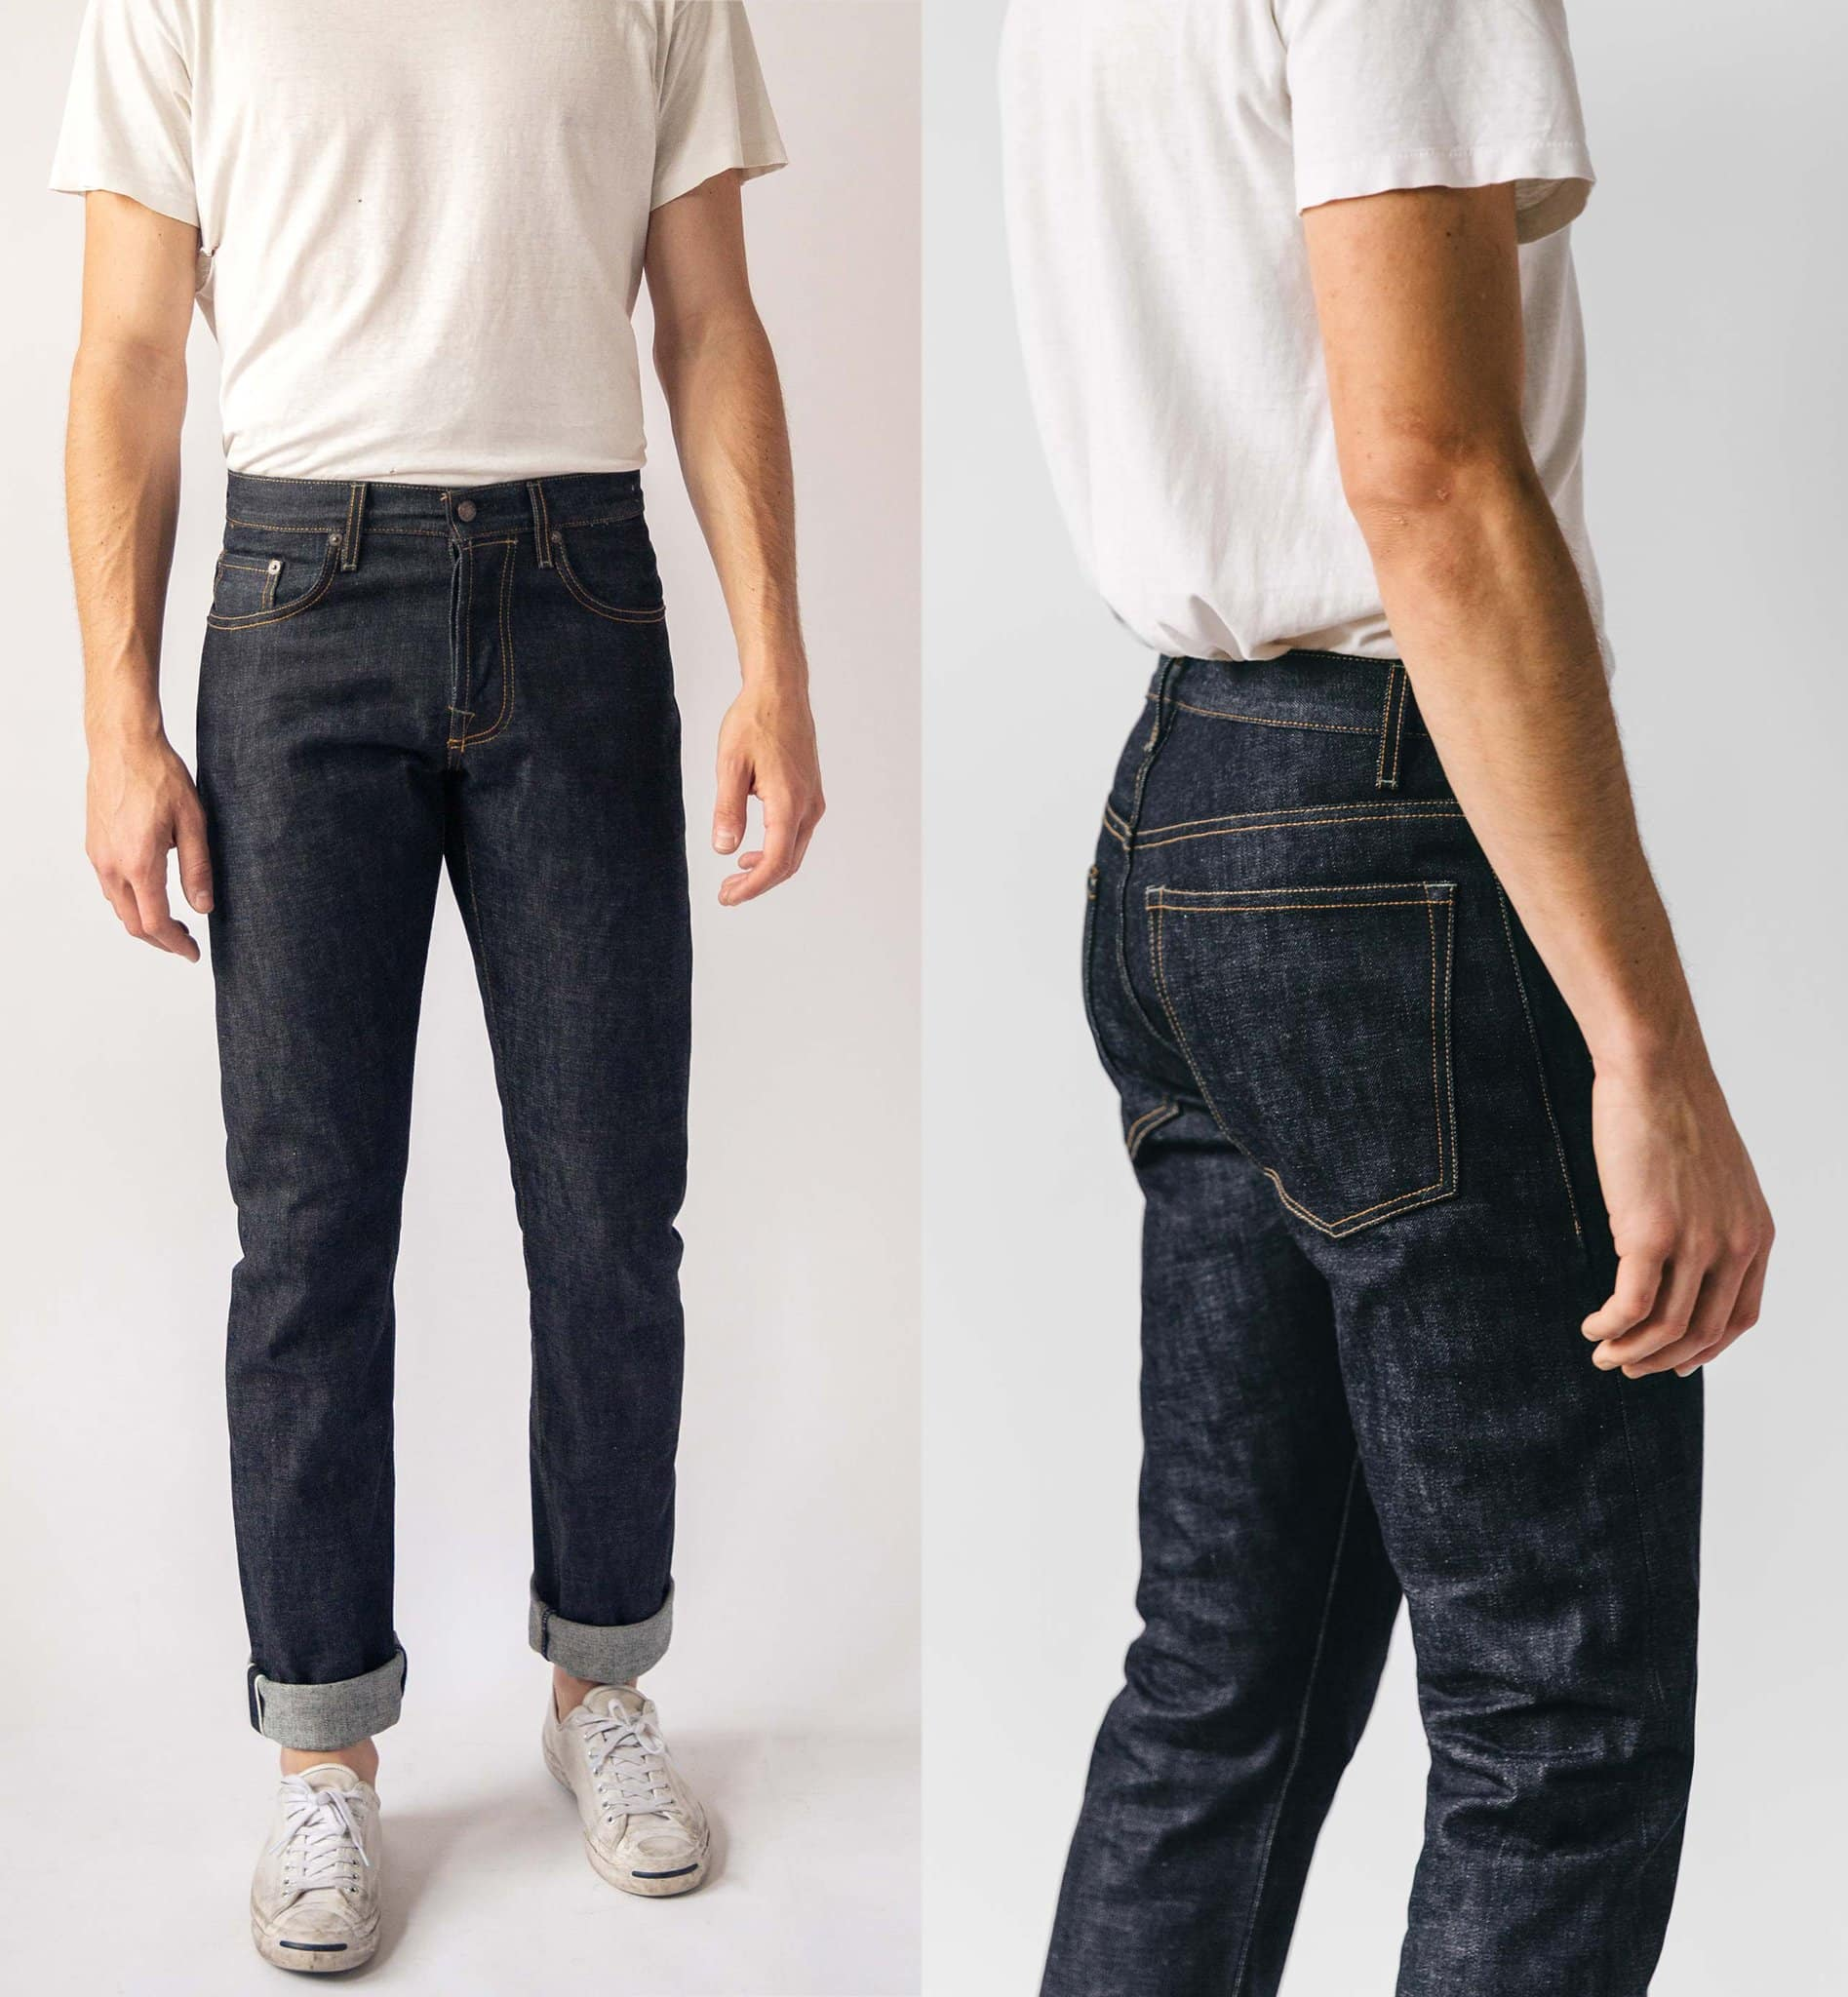 The Barton Slim Indigo Jp ($235) features an open weave fabric with a button-fly 5-pocket construction